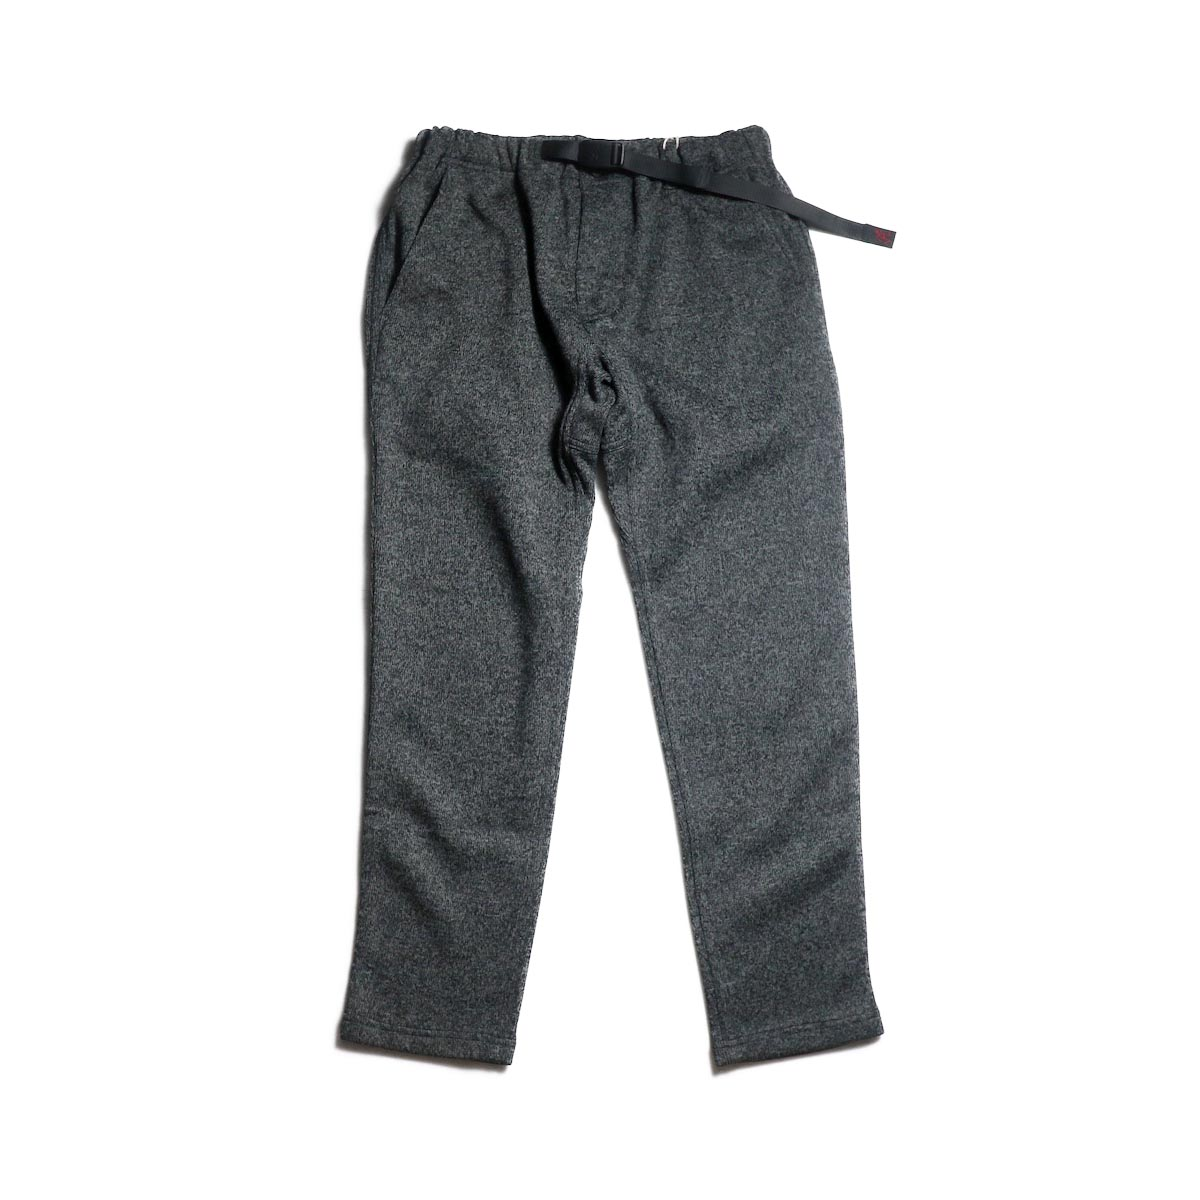 GRAMICCI / BONDING KNIT FLEECE SLIM PANTS (Charcoal × Black)